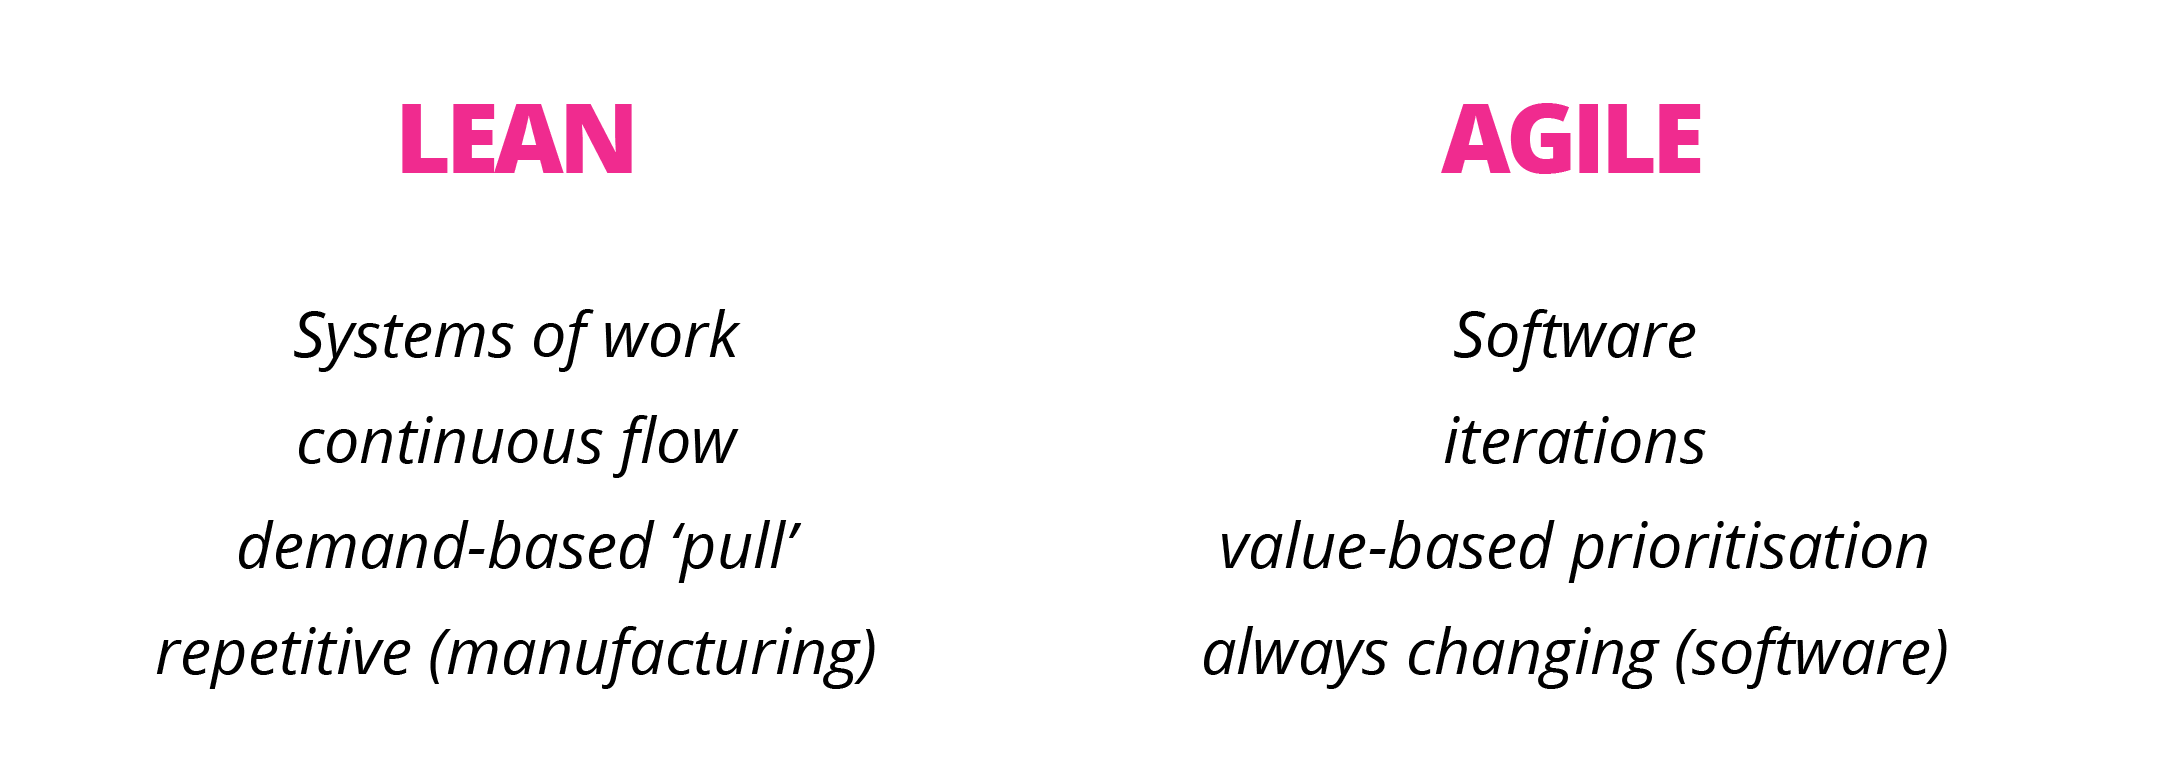 Figure 2. Comparing and contrasting Lean and Agile